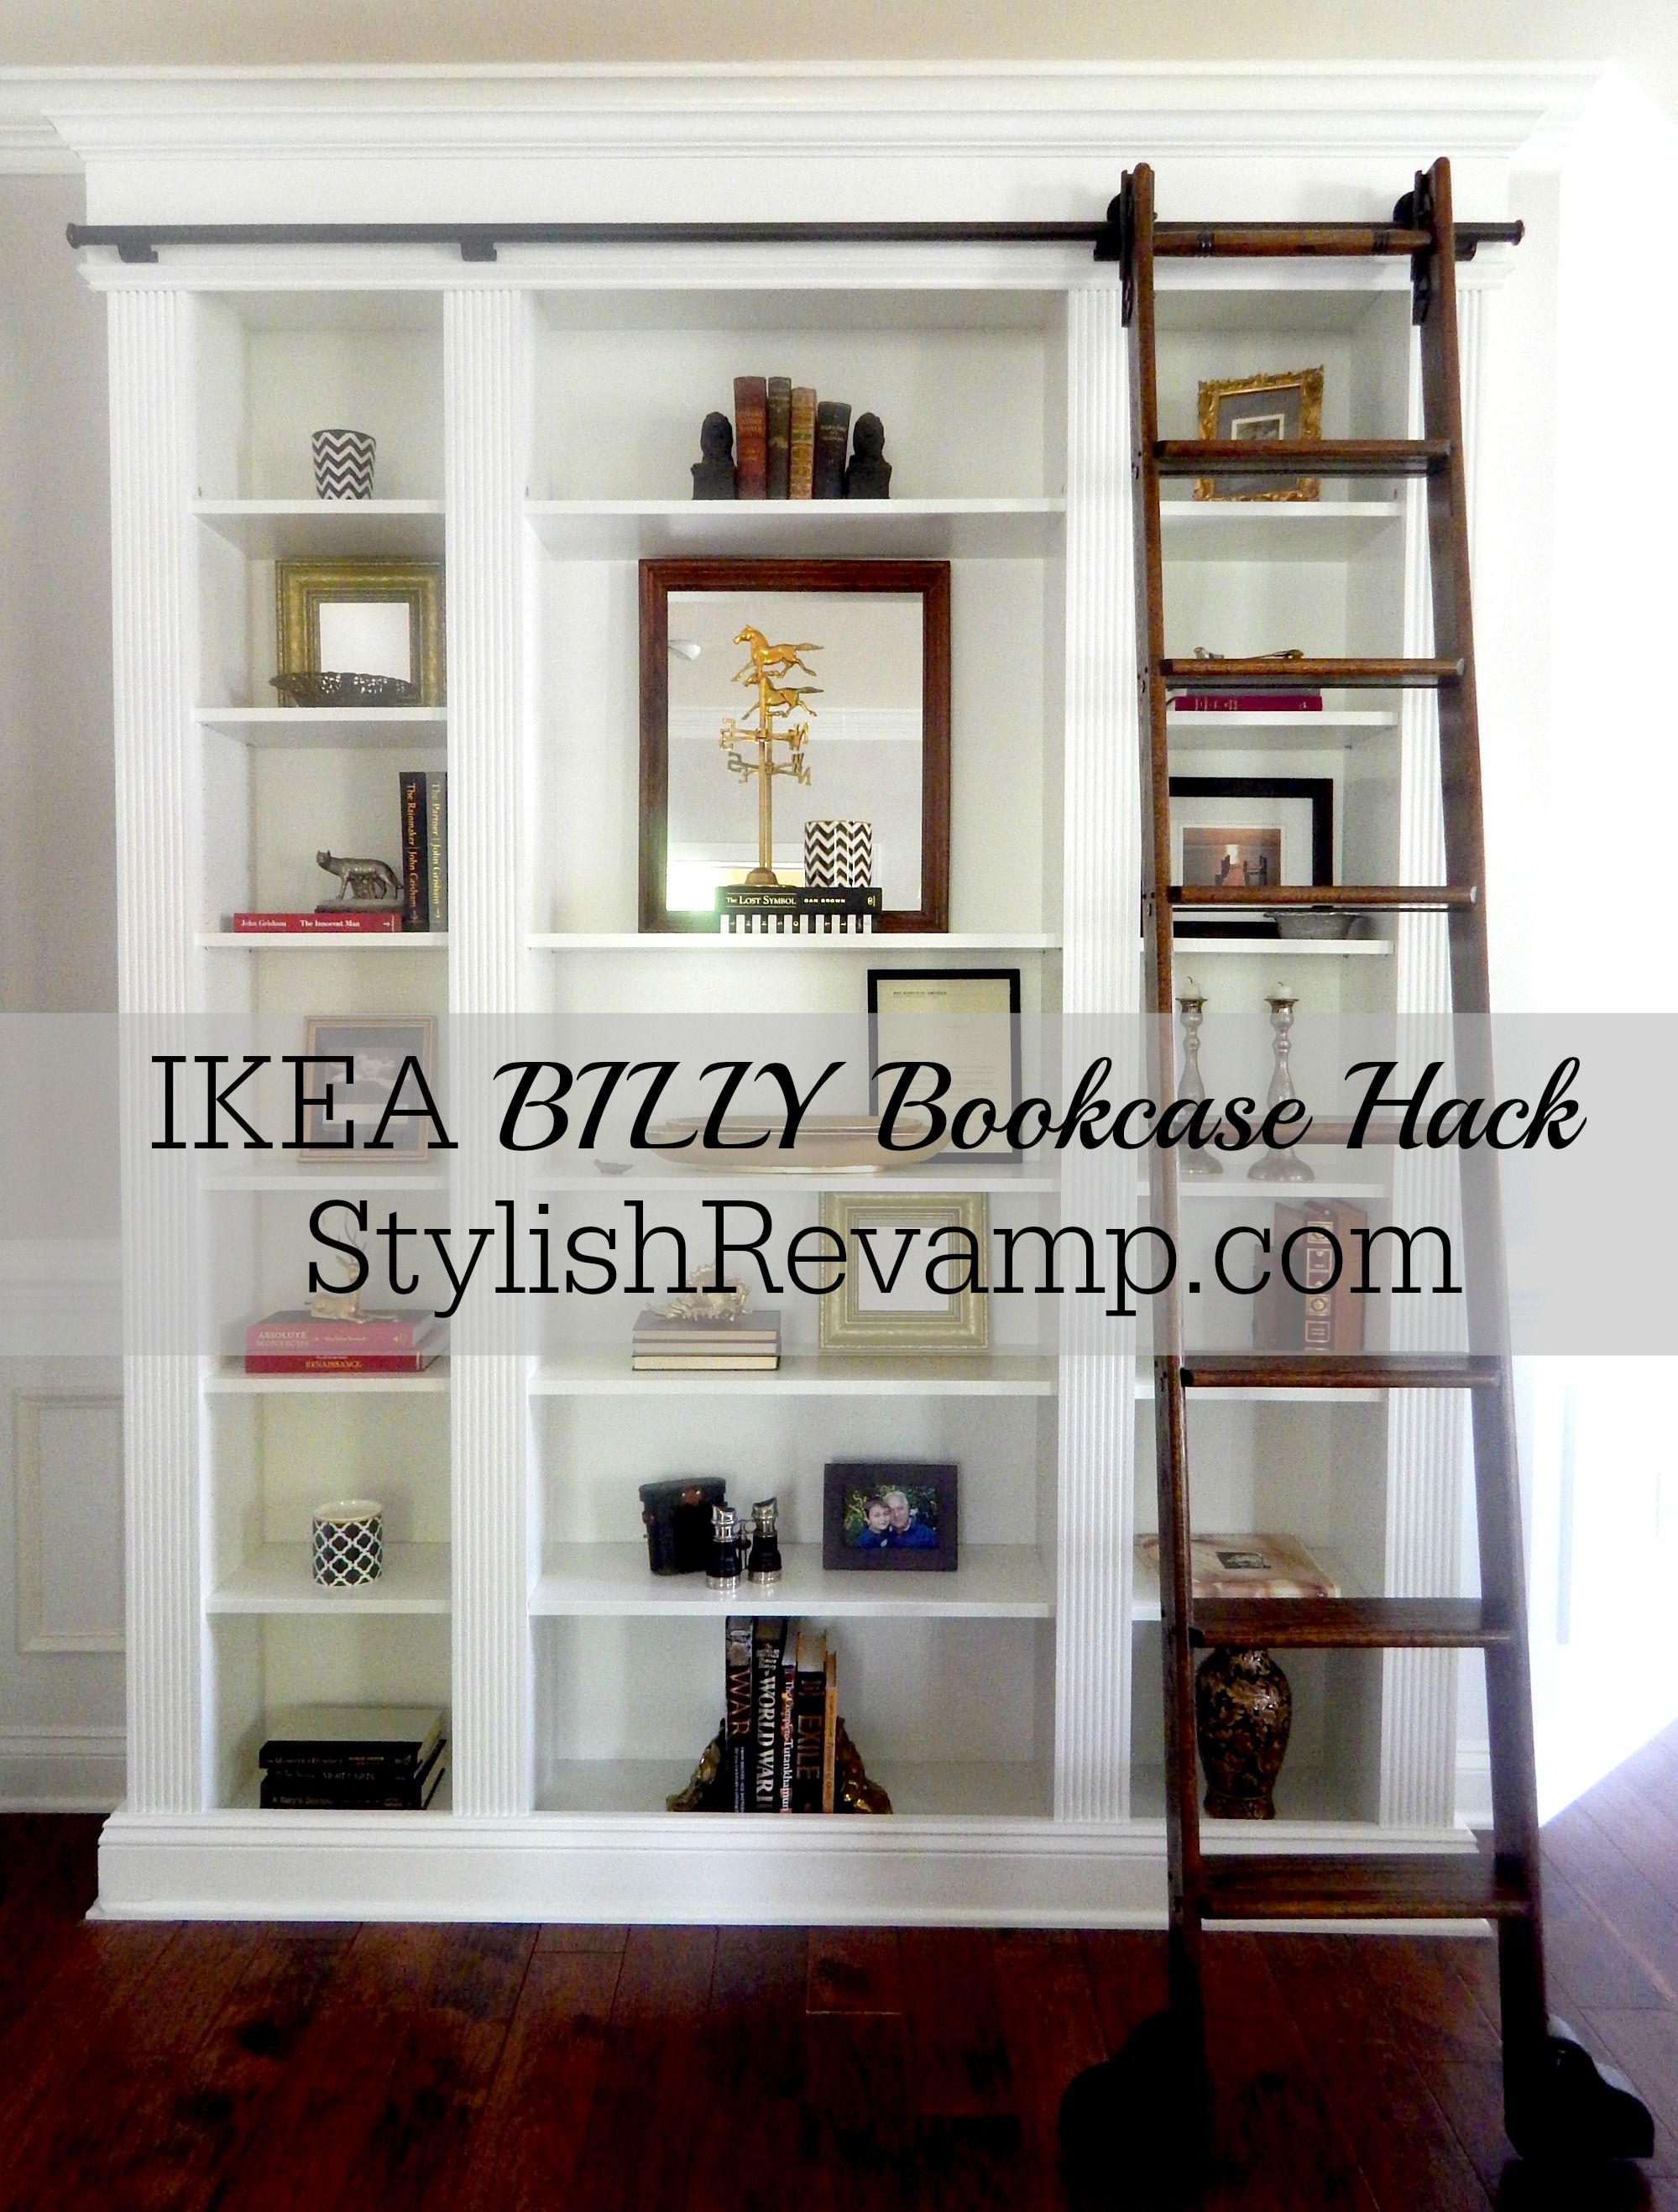 Wohnzimmer Hack Ikea Billy Bookcase Hack Diy Home Decorating Pinterest